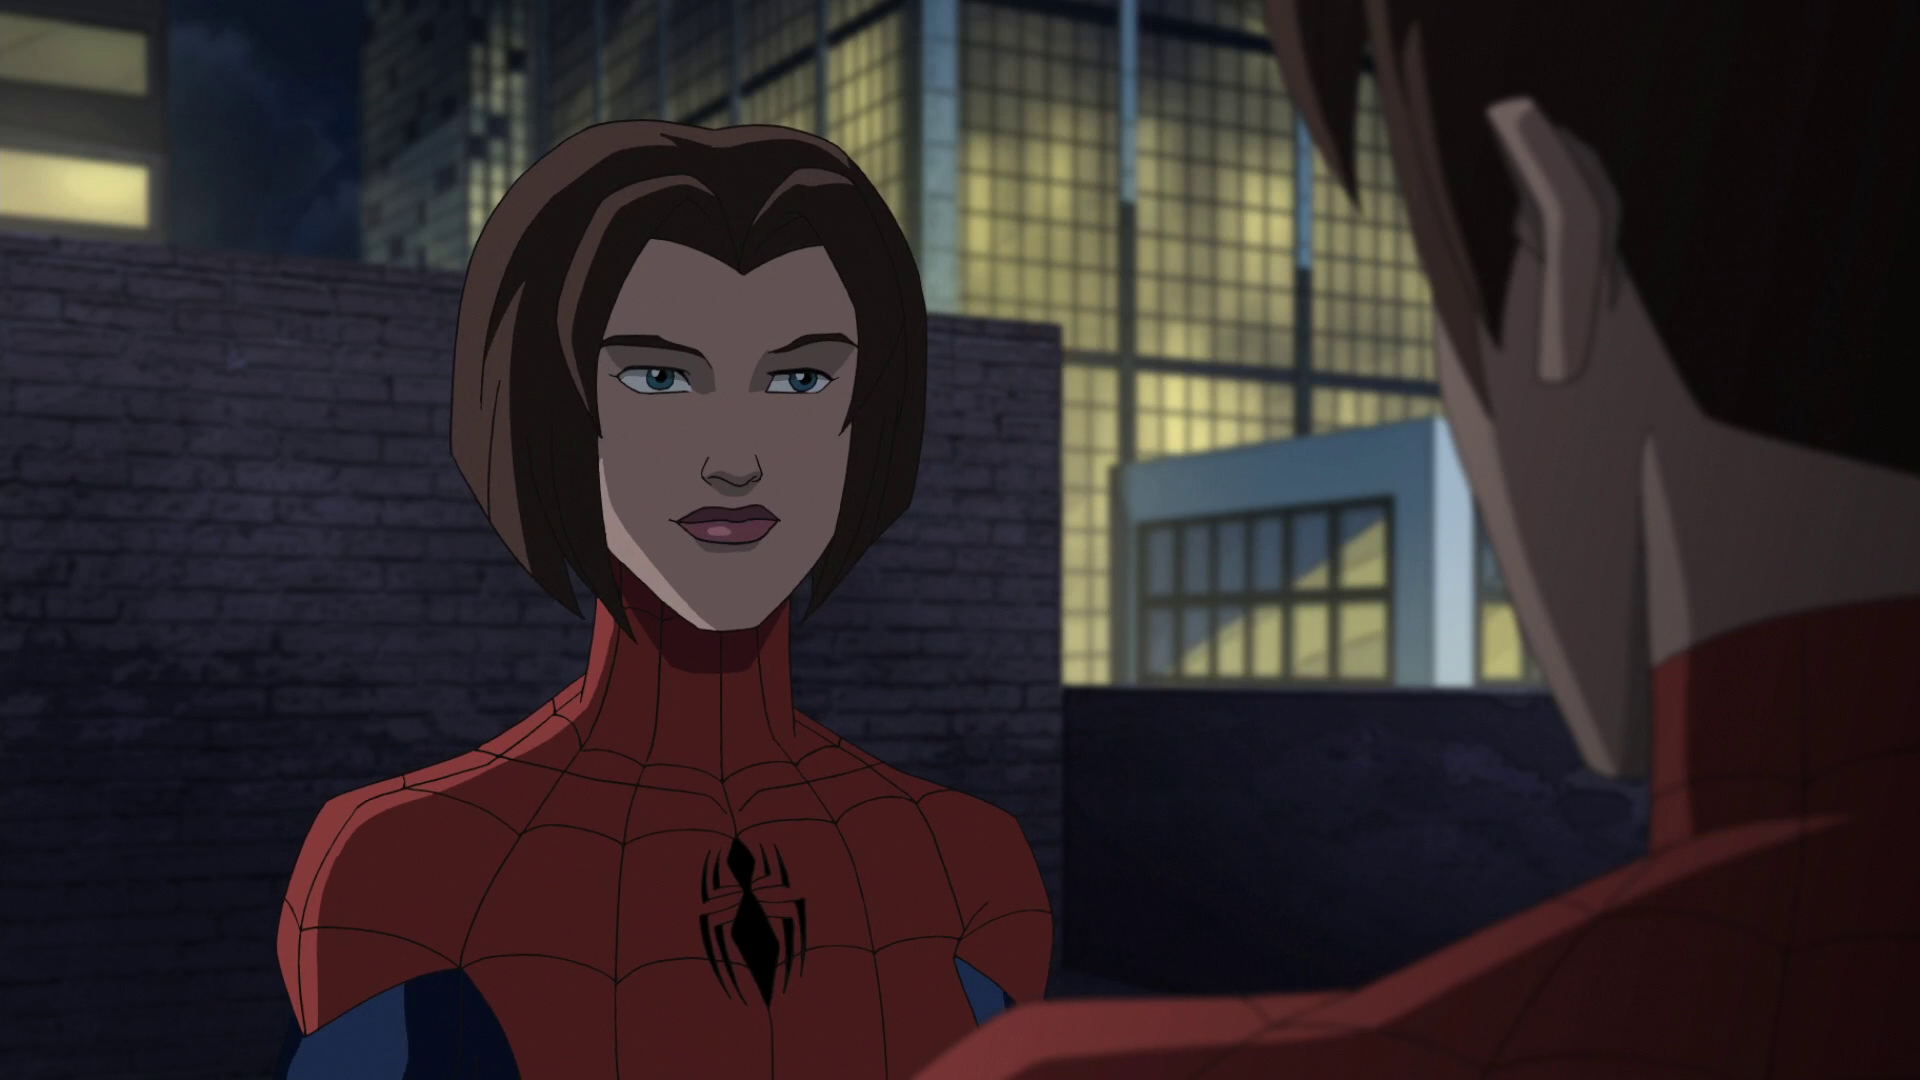 Ultimate spider man web warriors squirrel girl - photo#14